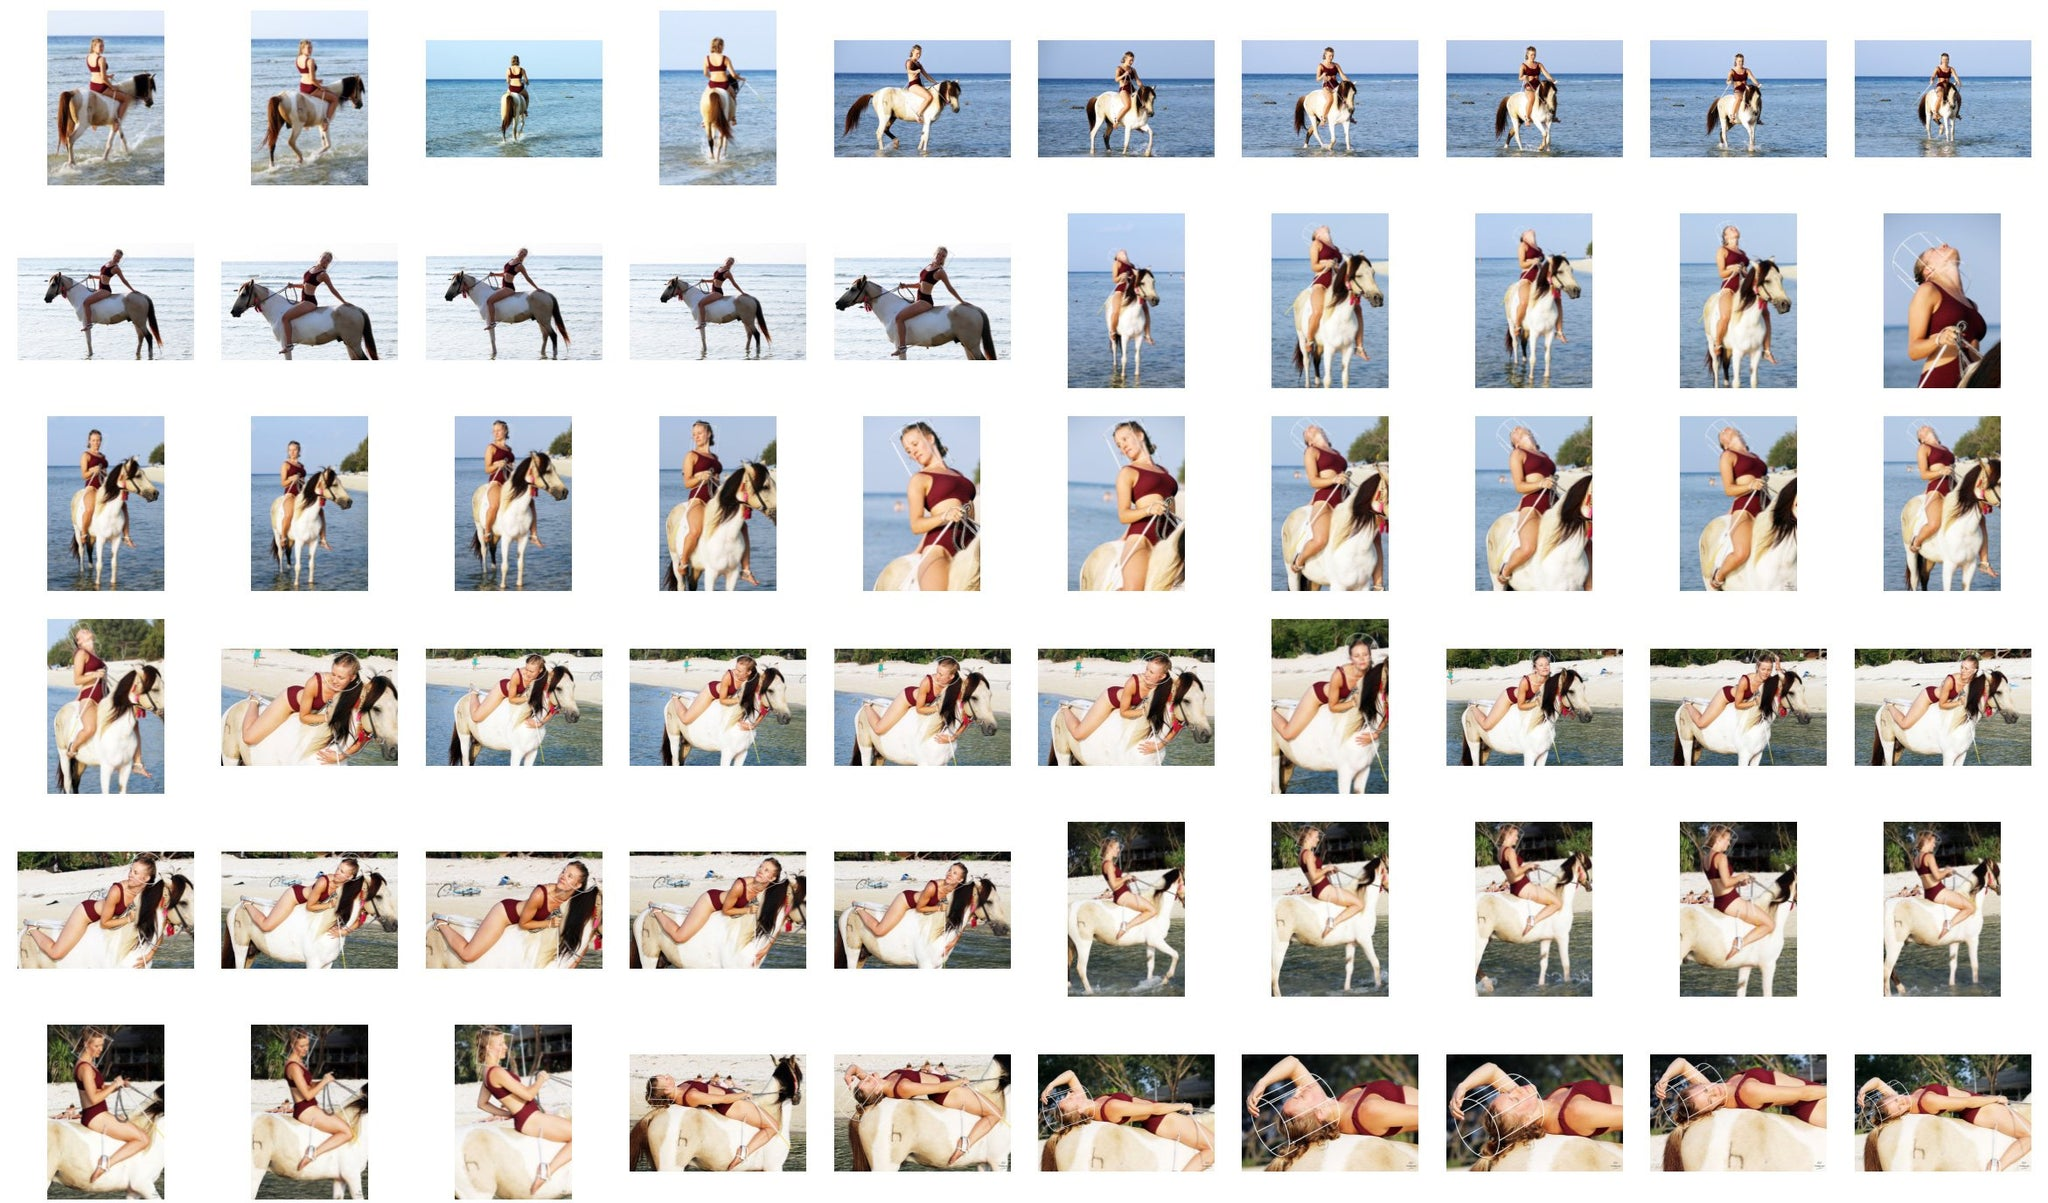 Victoria (Yoga Teacher) in Bikini Riding Bareback on Buckskin Horse, Part 2